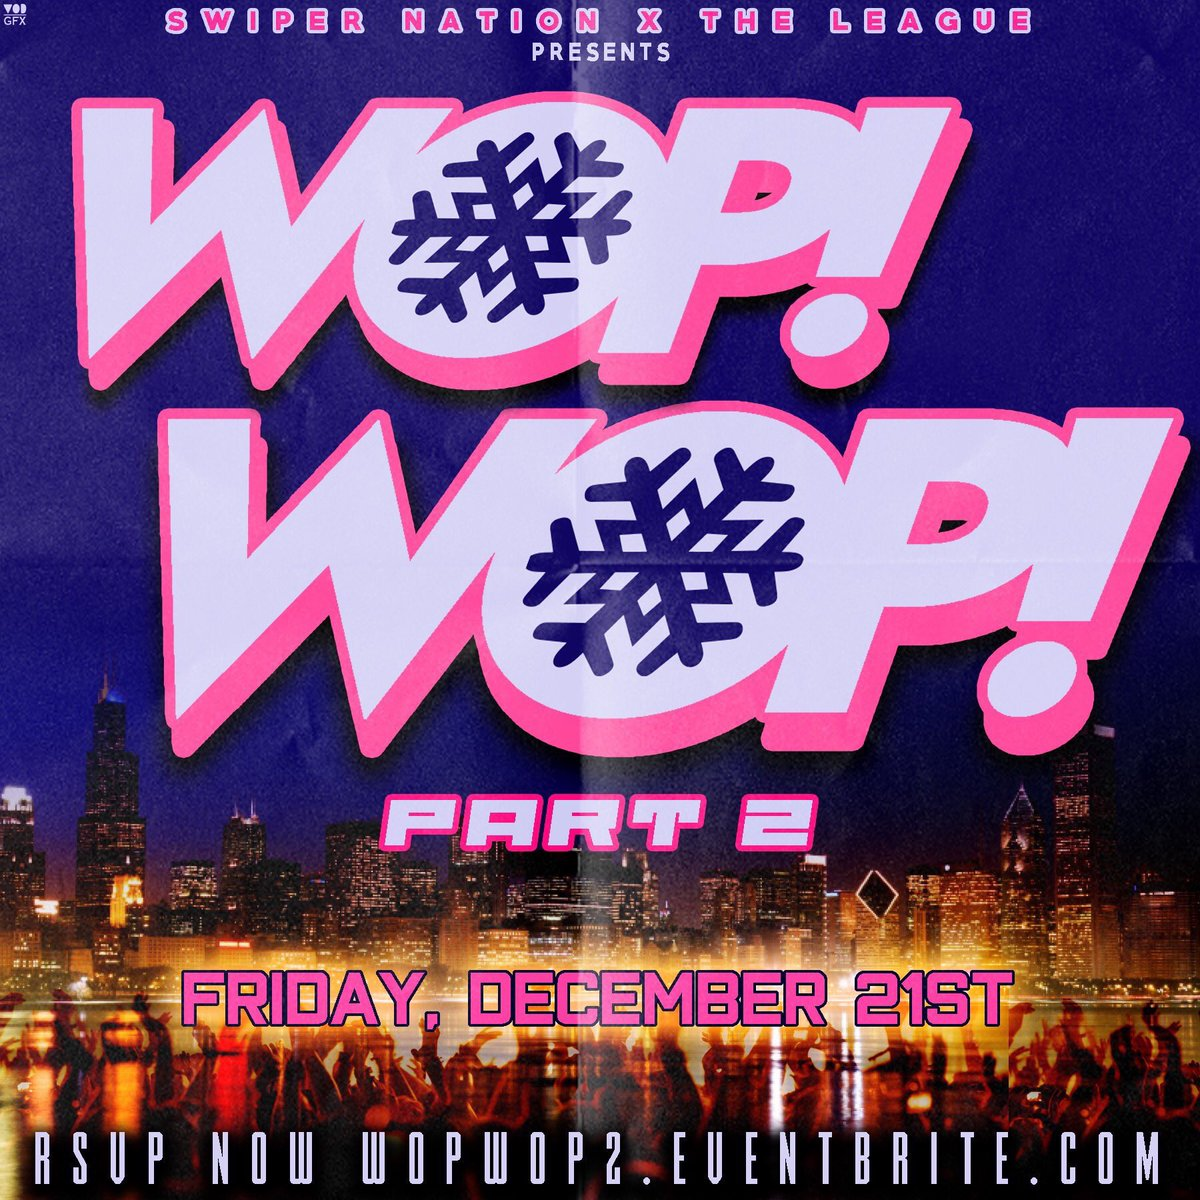 WOP WOP PART 2 | FRI, DECEMBER 21ST | Swiper Nation x The League | RSVP @ the link posted on the flyer | RT TO SPREAD THE WORD! | #<br>http://pic.twitter.com/ABLErvHcC4